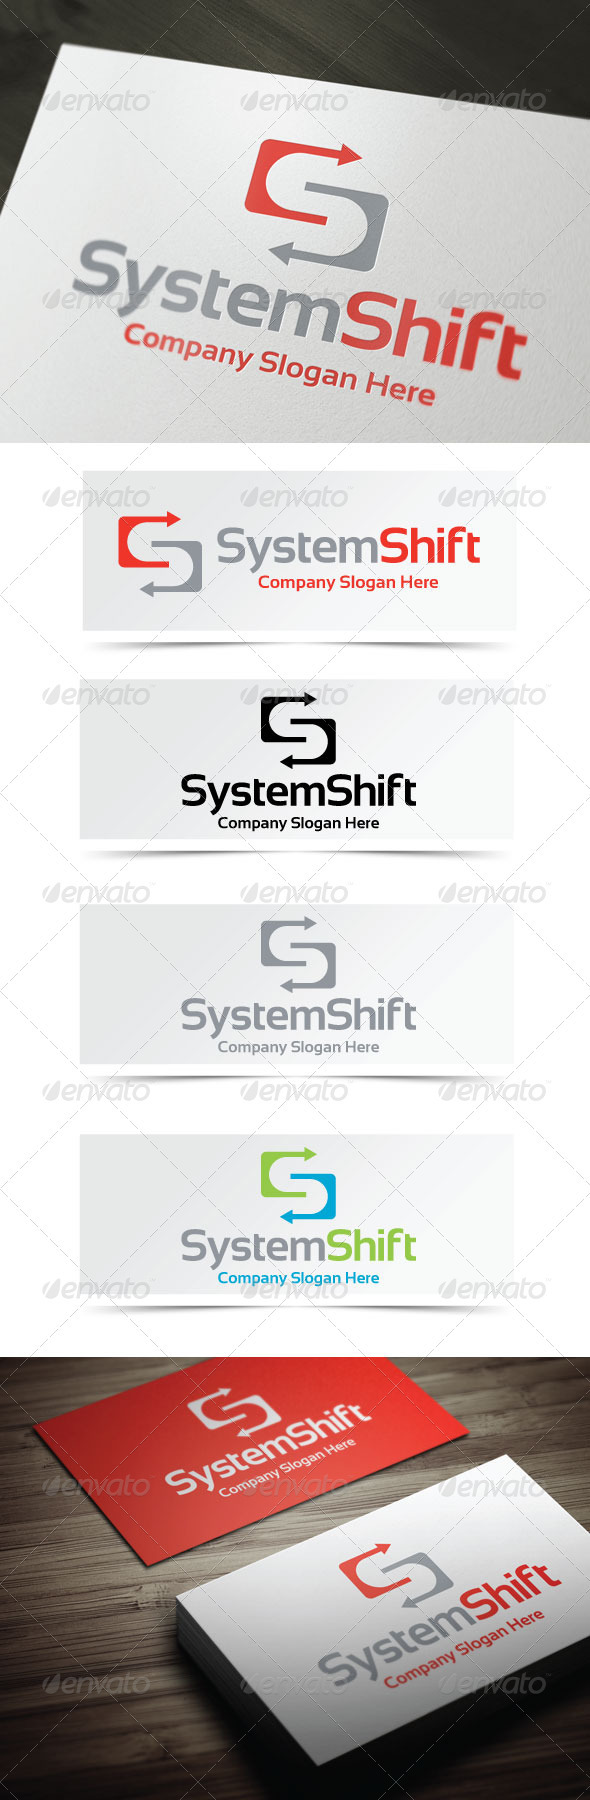 GraphicRiver System Shift Logo 4013578